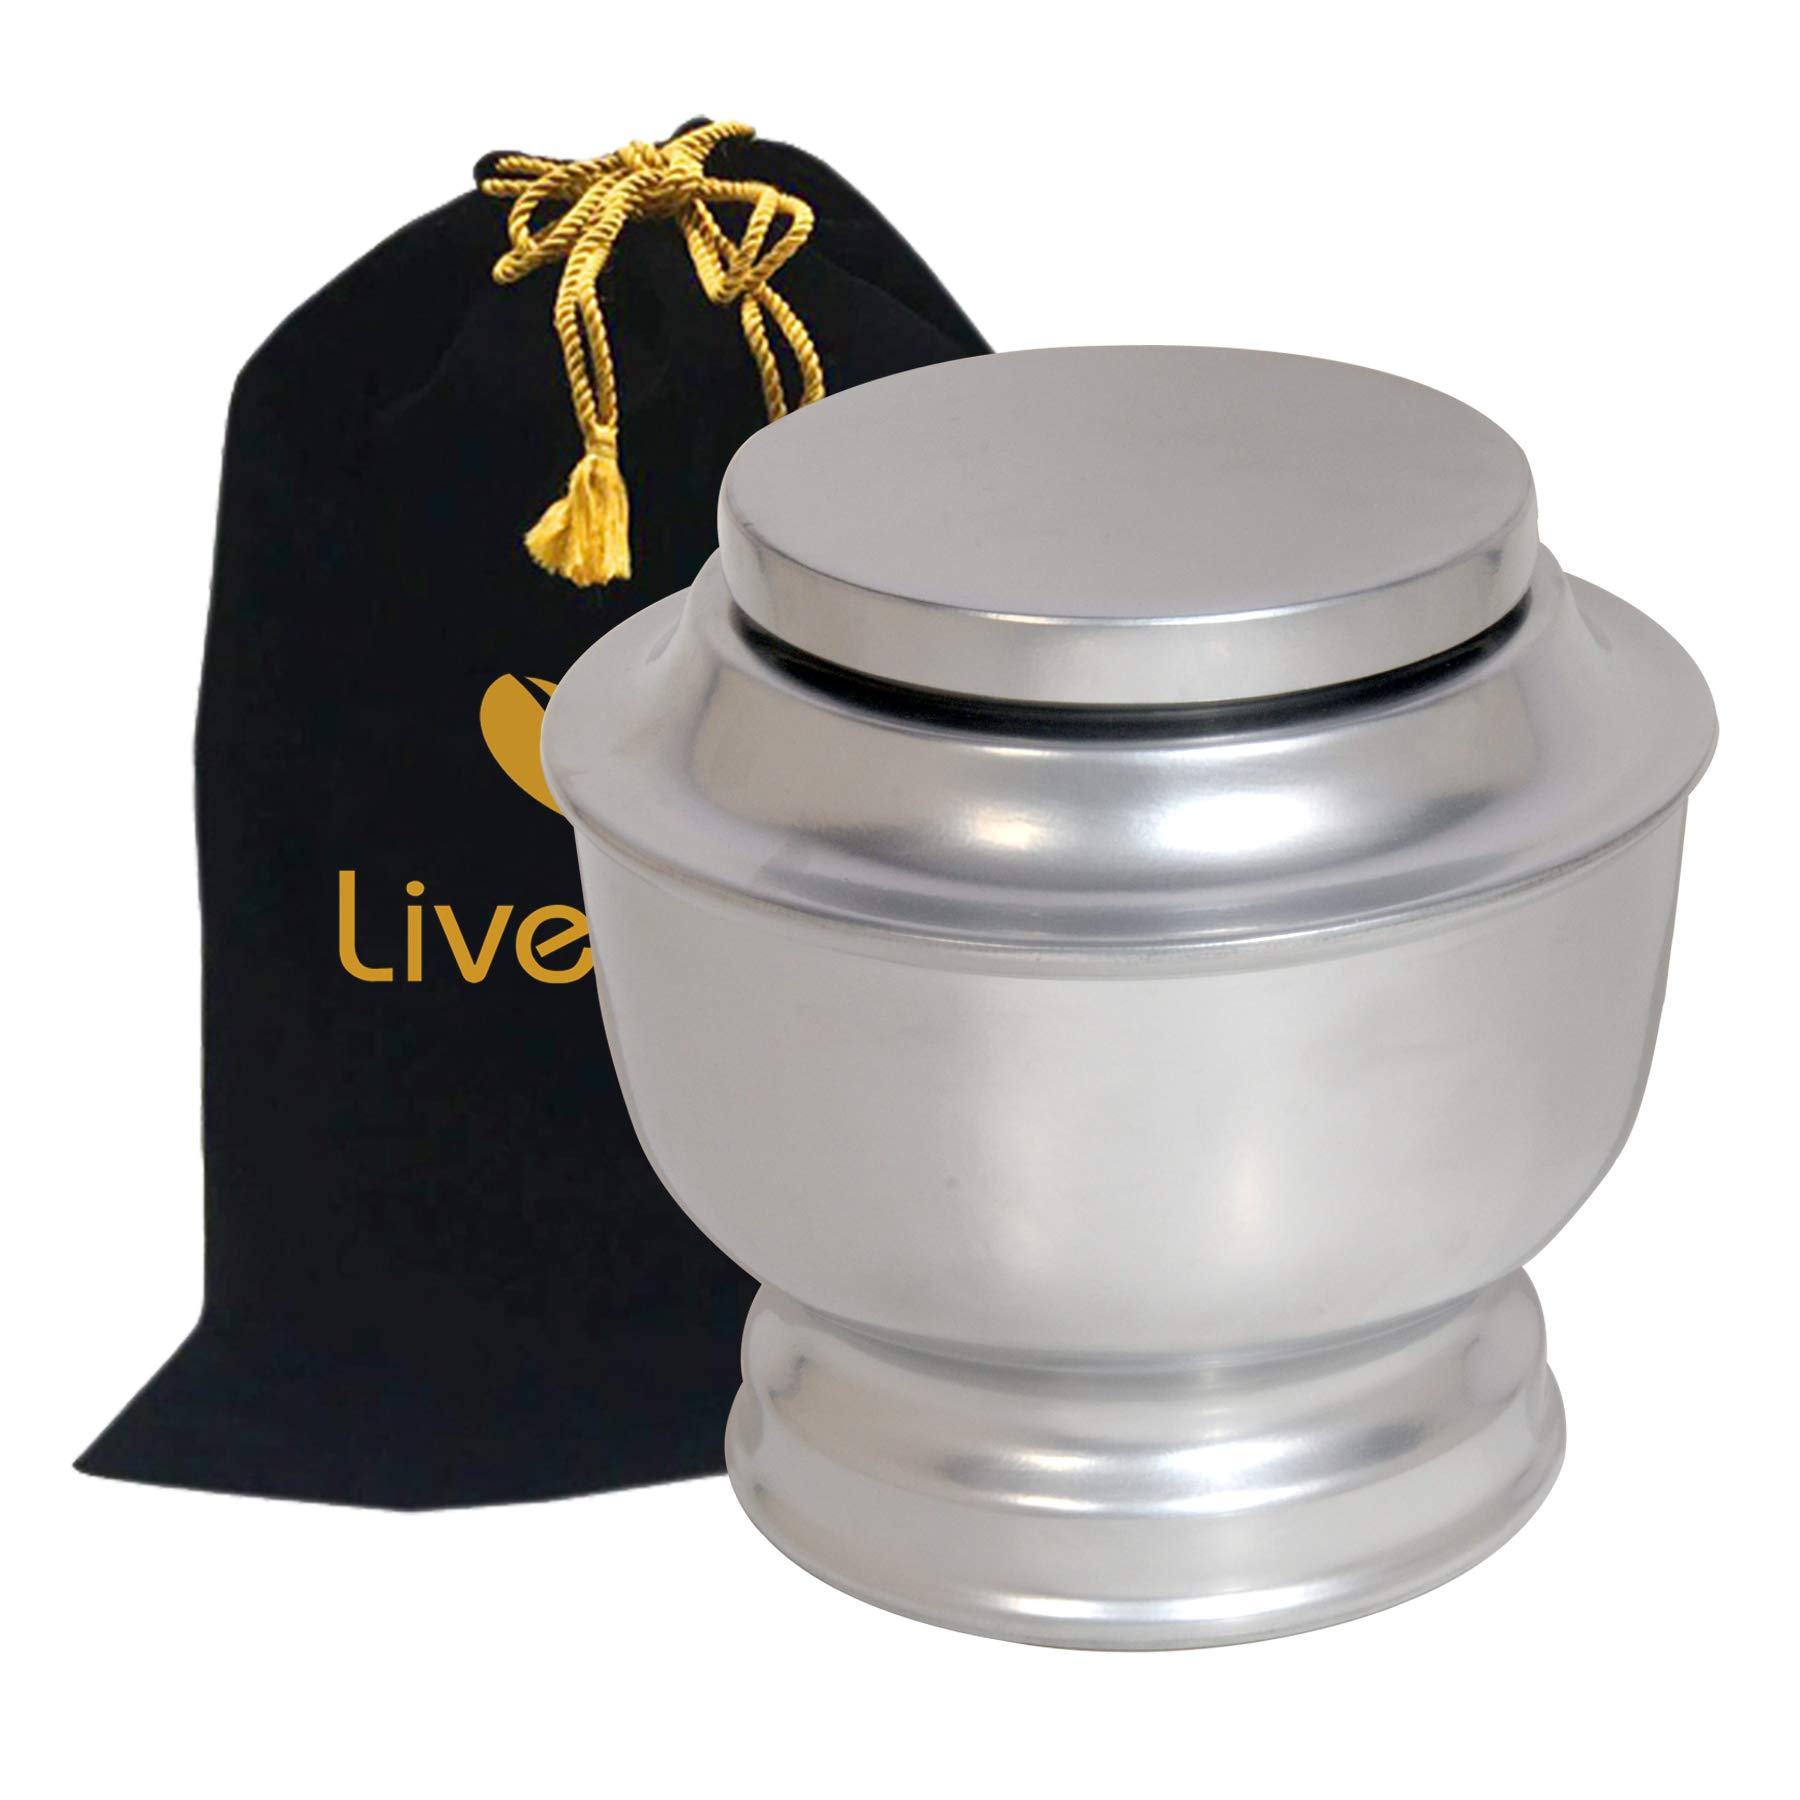 Liveurns Classic Majesty Funeral Cremation Urn - Adult Urn - Solid Metal Funeral Urn - Handcrafted Adult Funeral Urn for Ashes -Affordable Urn Deal (Silver)